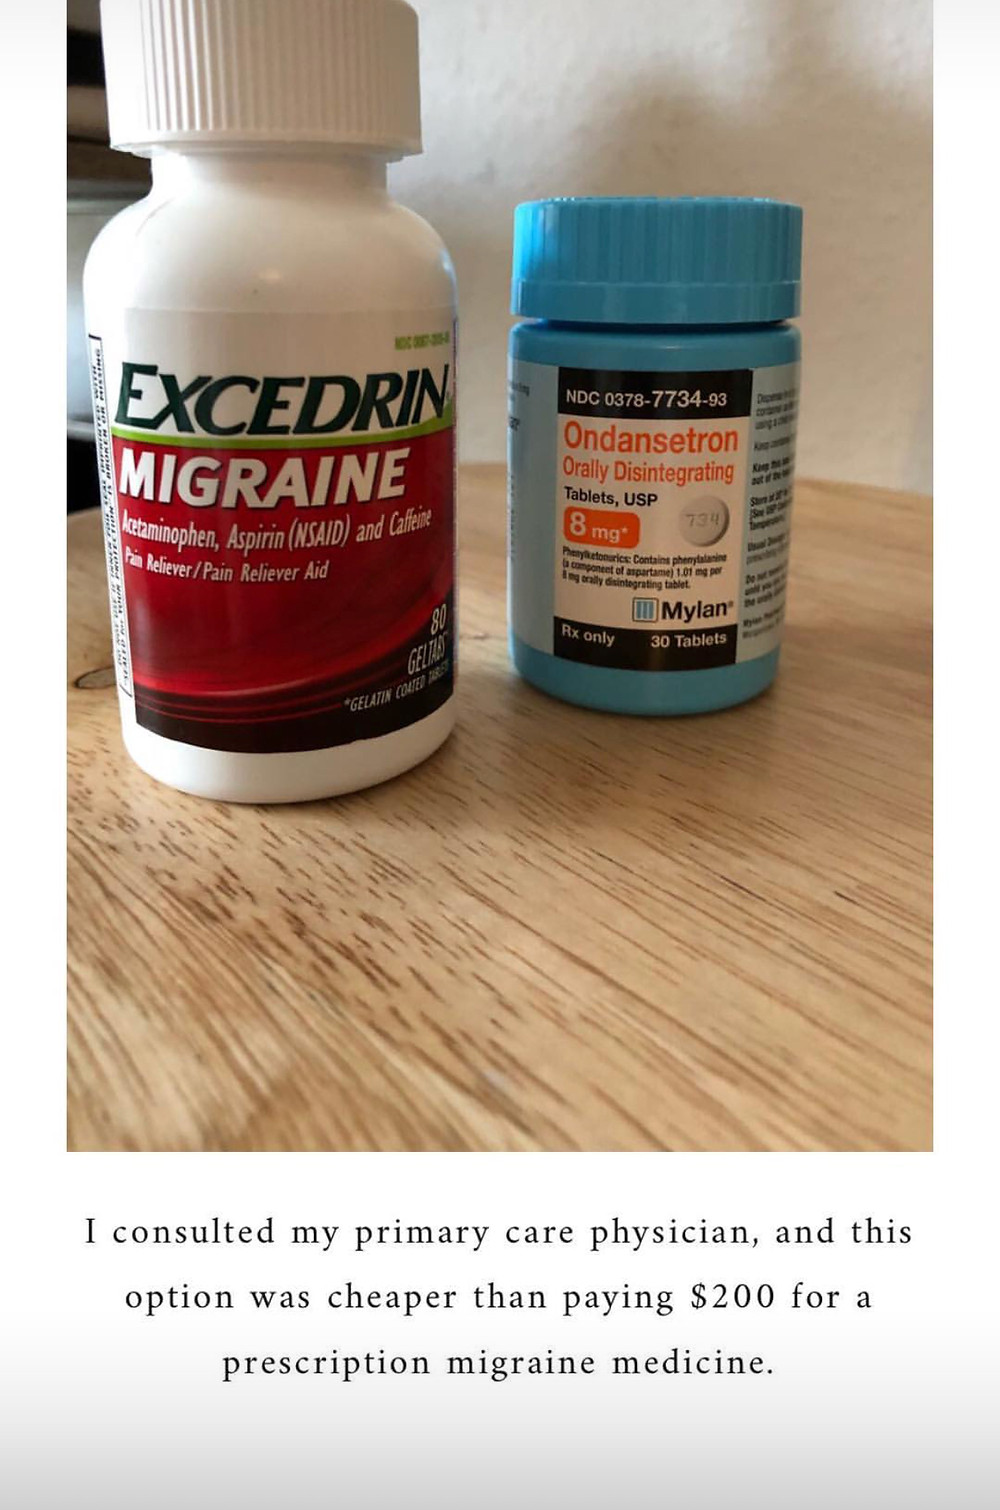 excedrin migraine and nausea pill